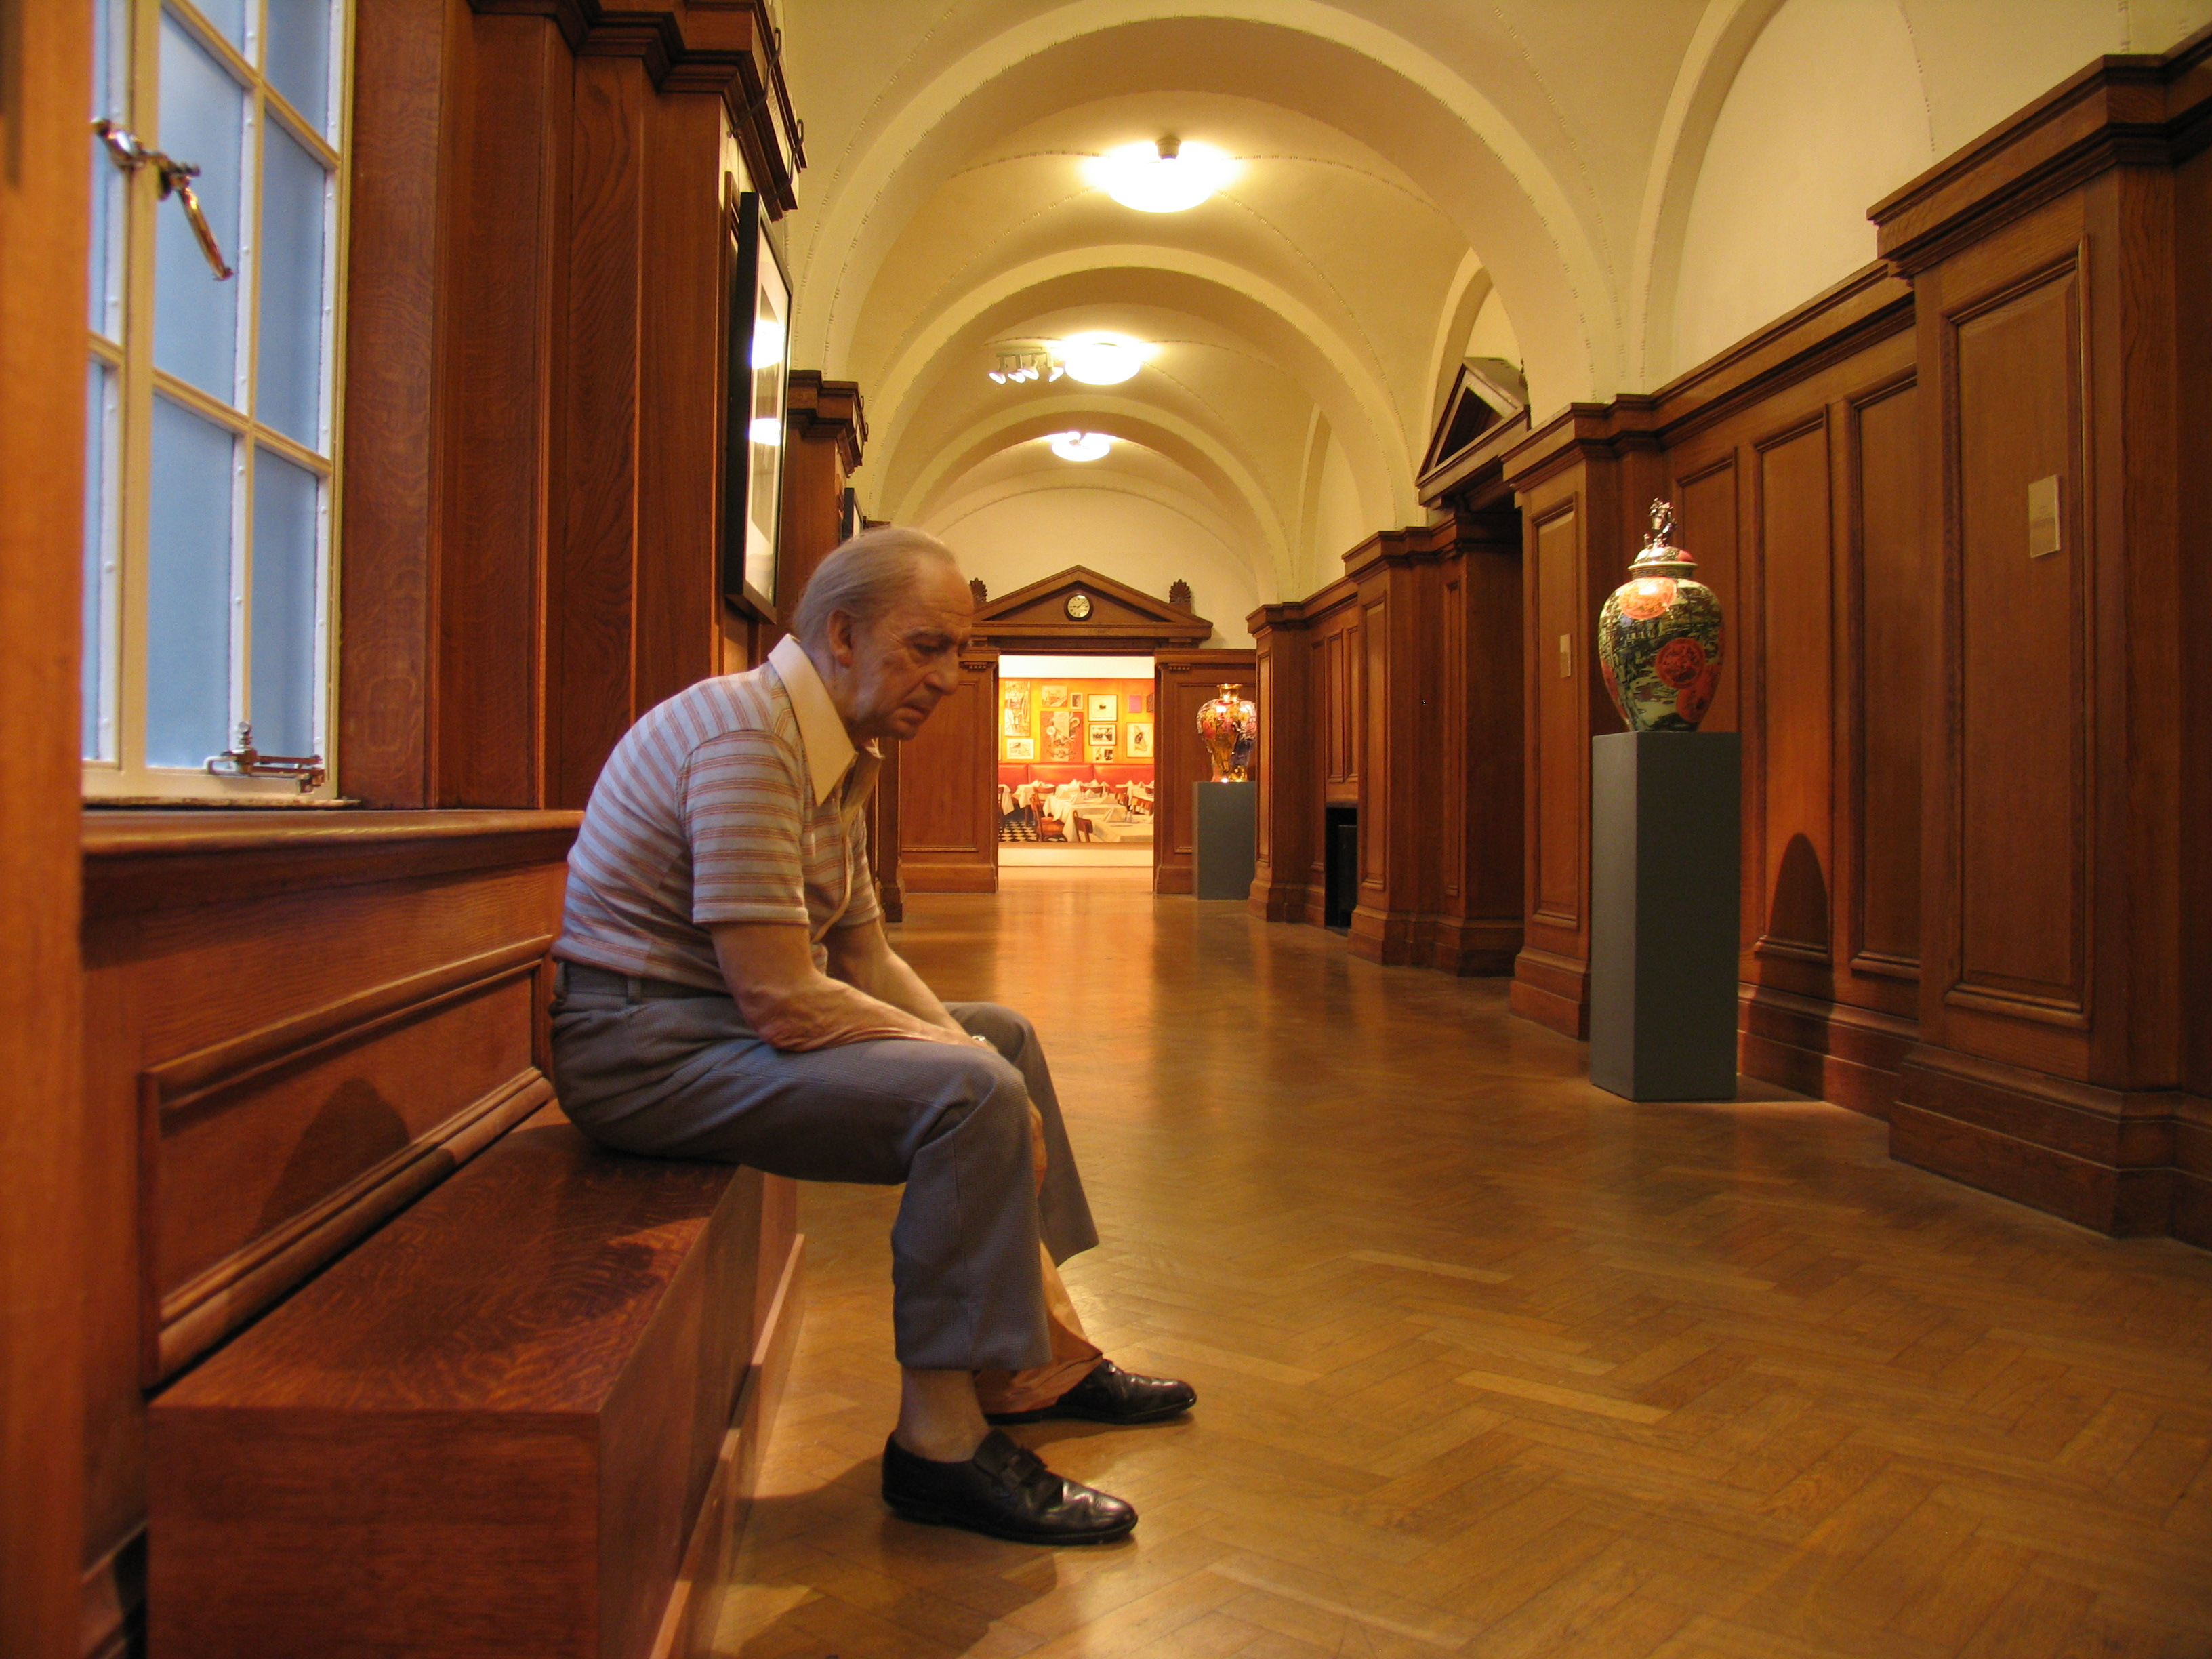 Man on Bench - Duane Hanson